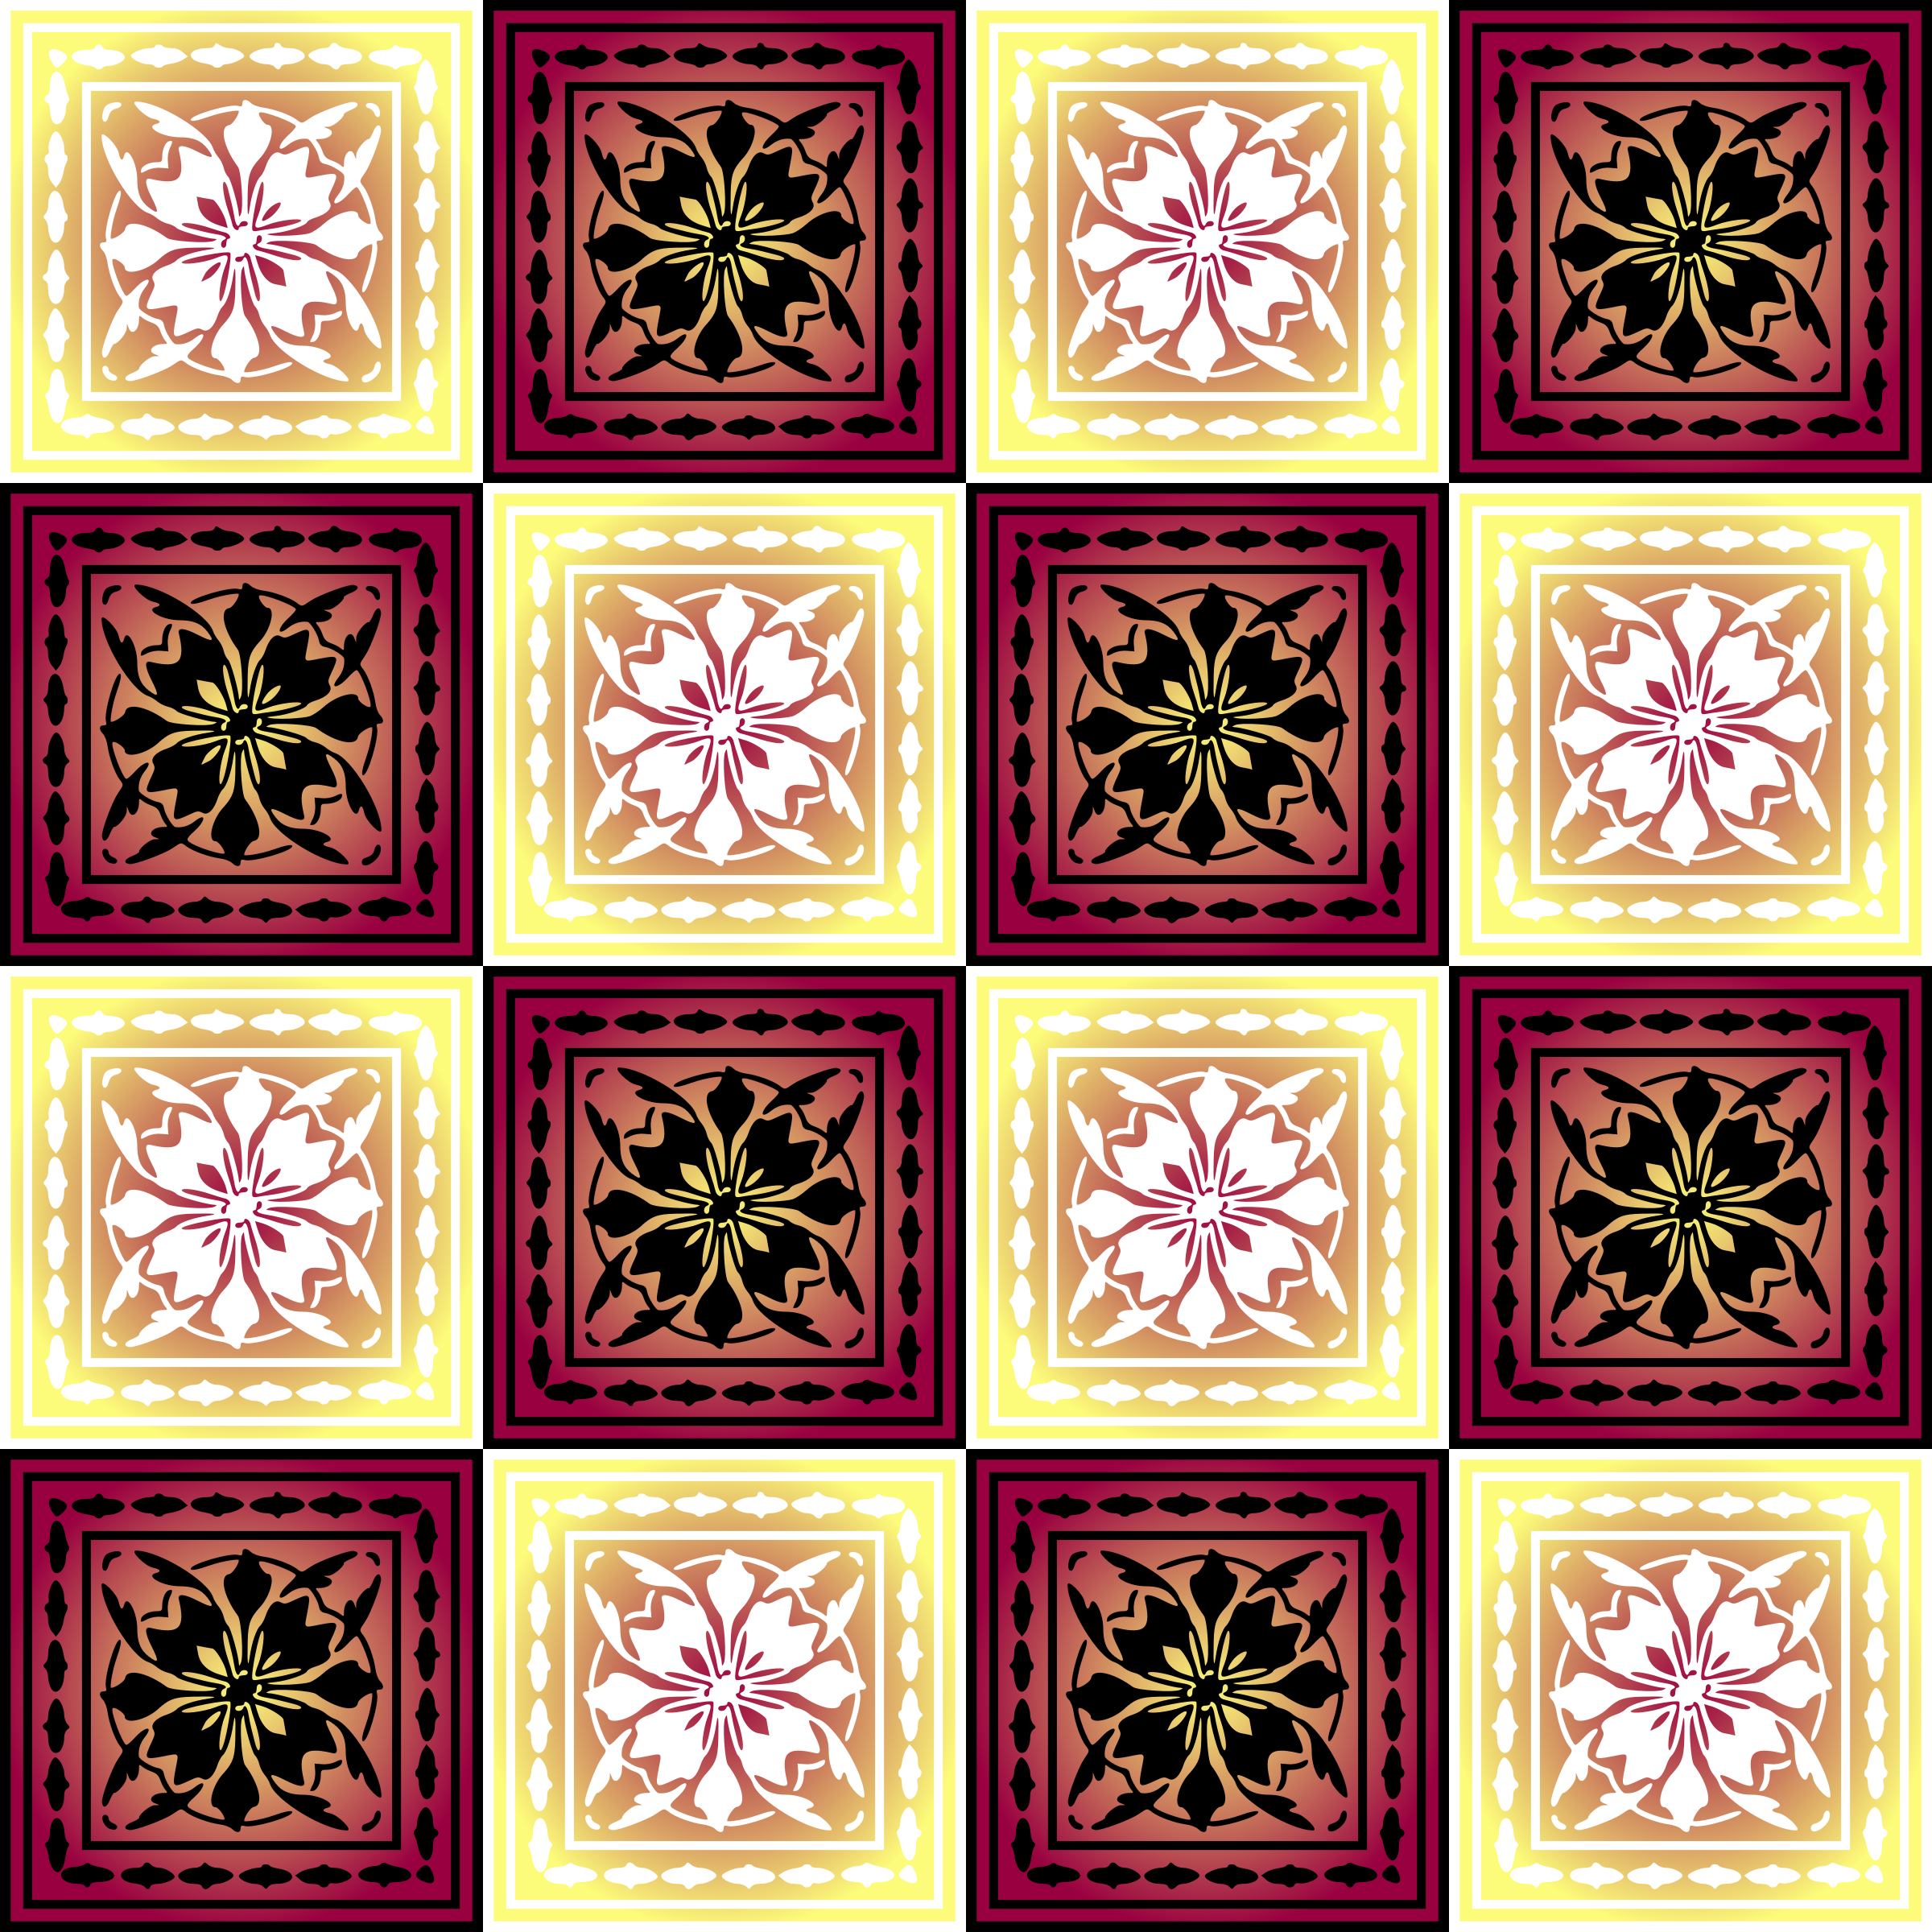 Background pattern 124 (colour) by Firkin